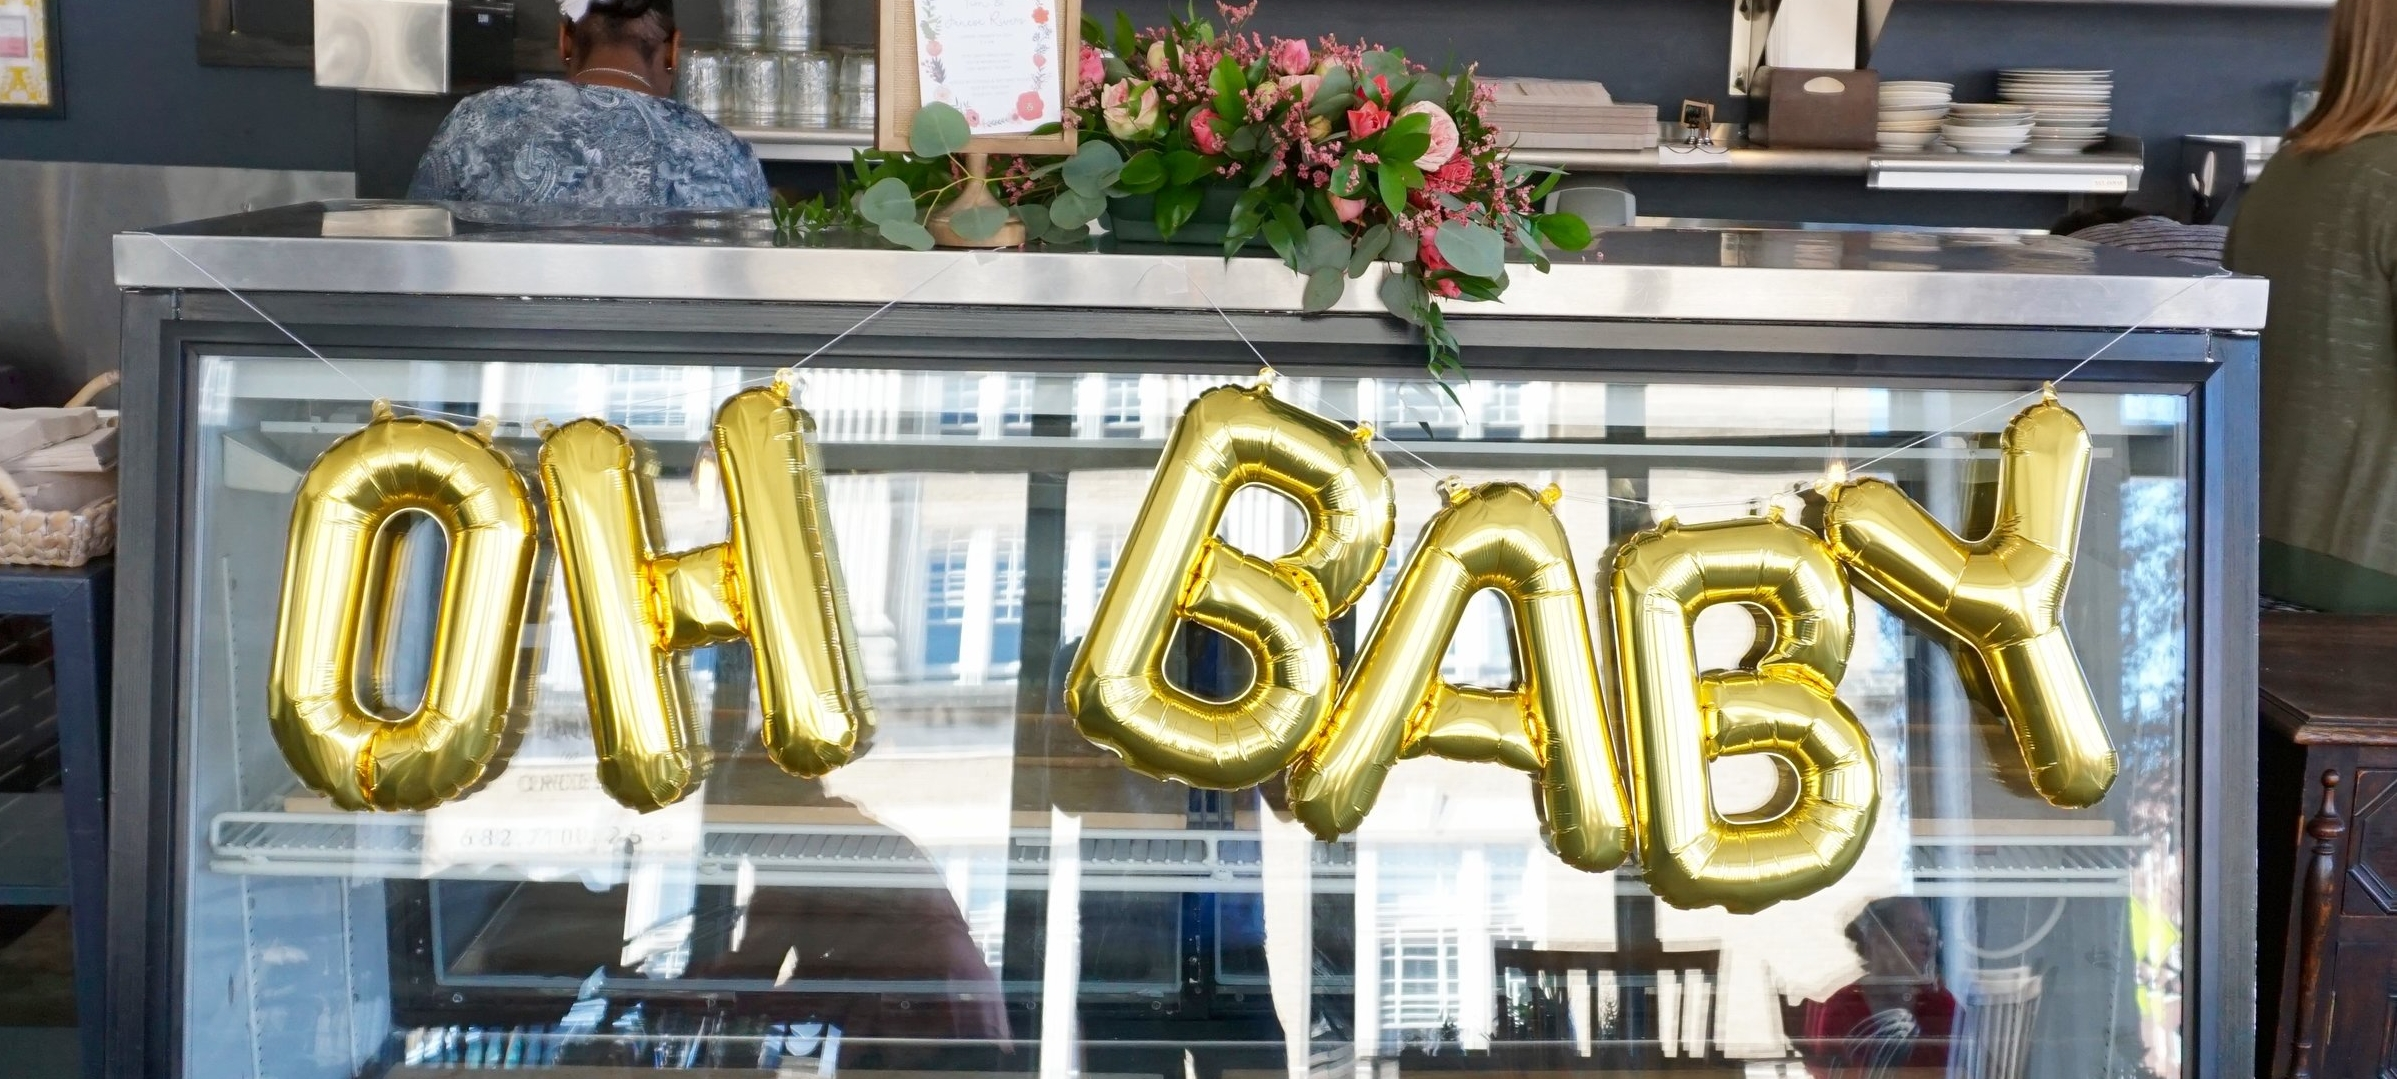 """""""Oh baby"""" Balloons from  OhShiny Paper Co. on Etsy"""